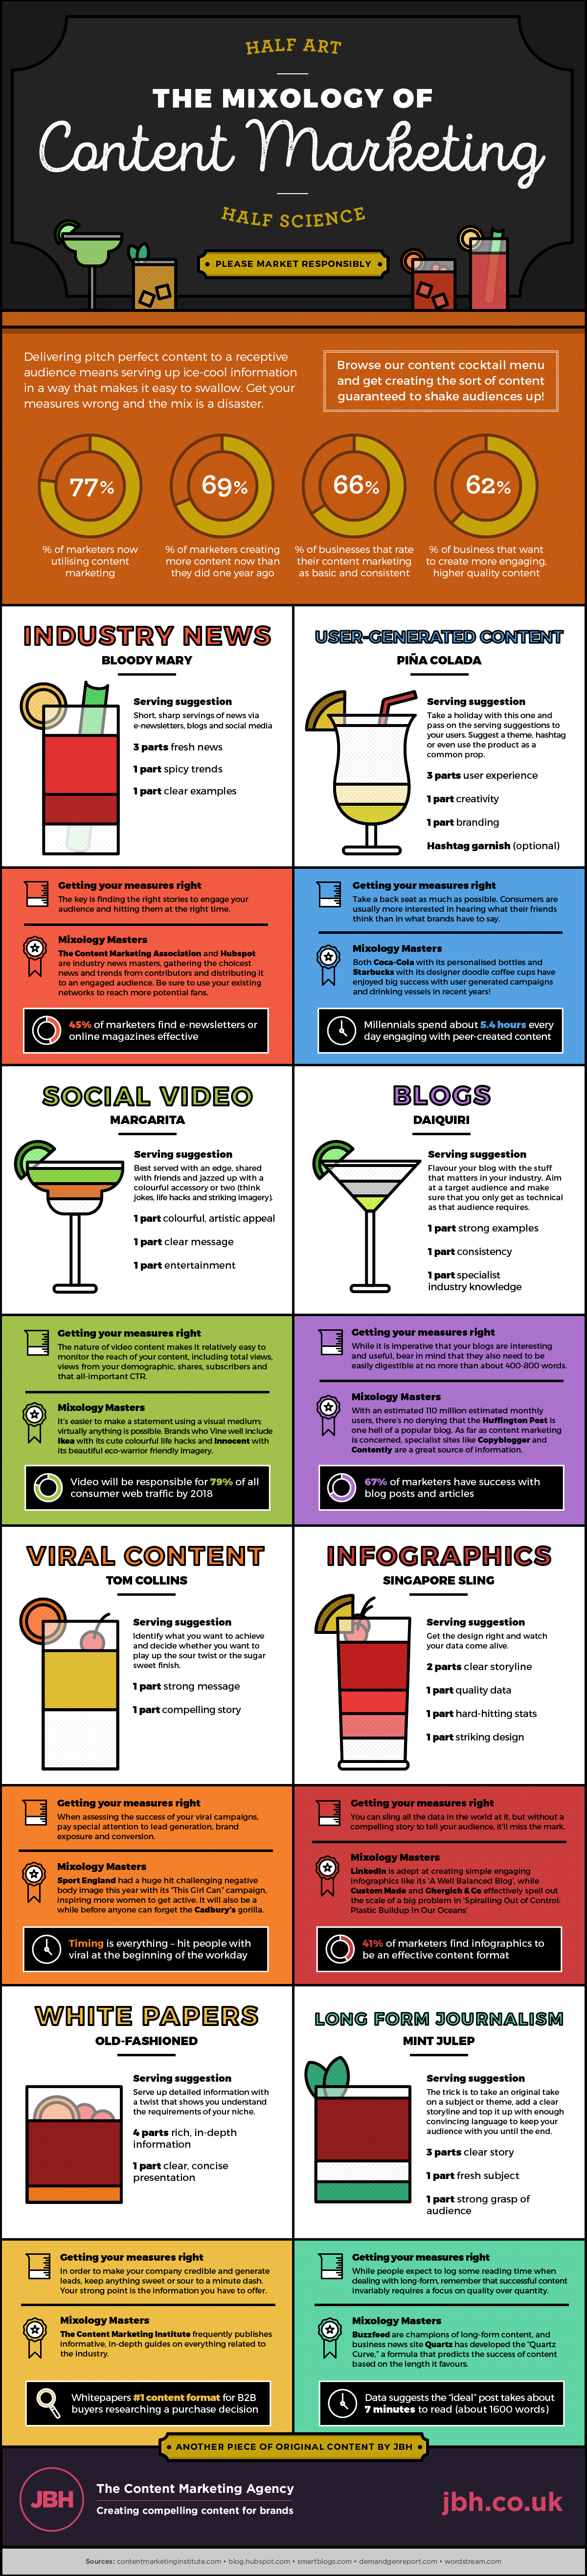 Mixology of Content Marketing Infographic